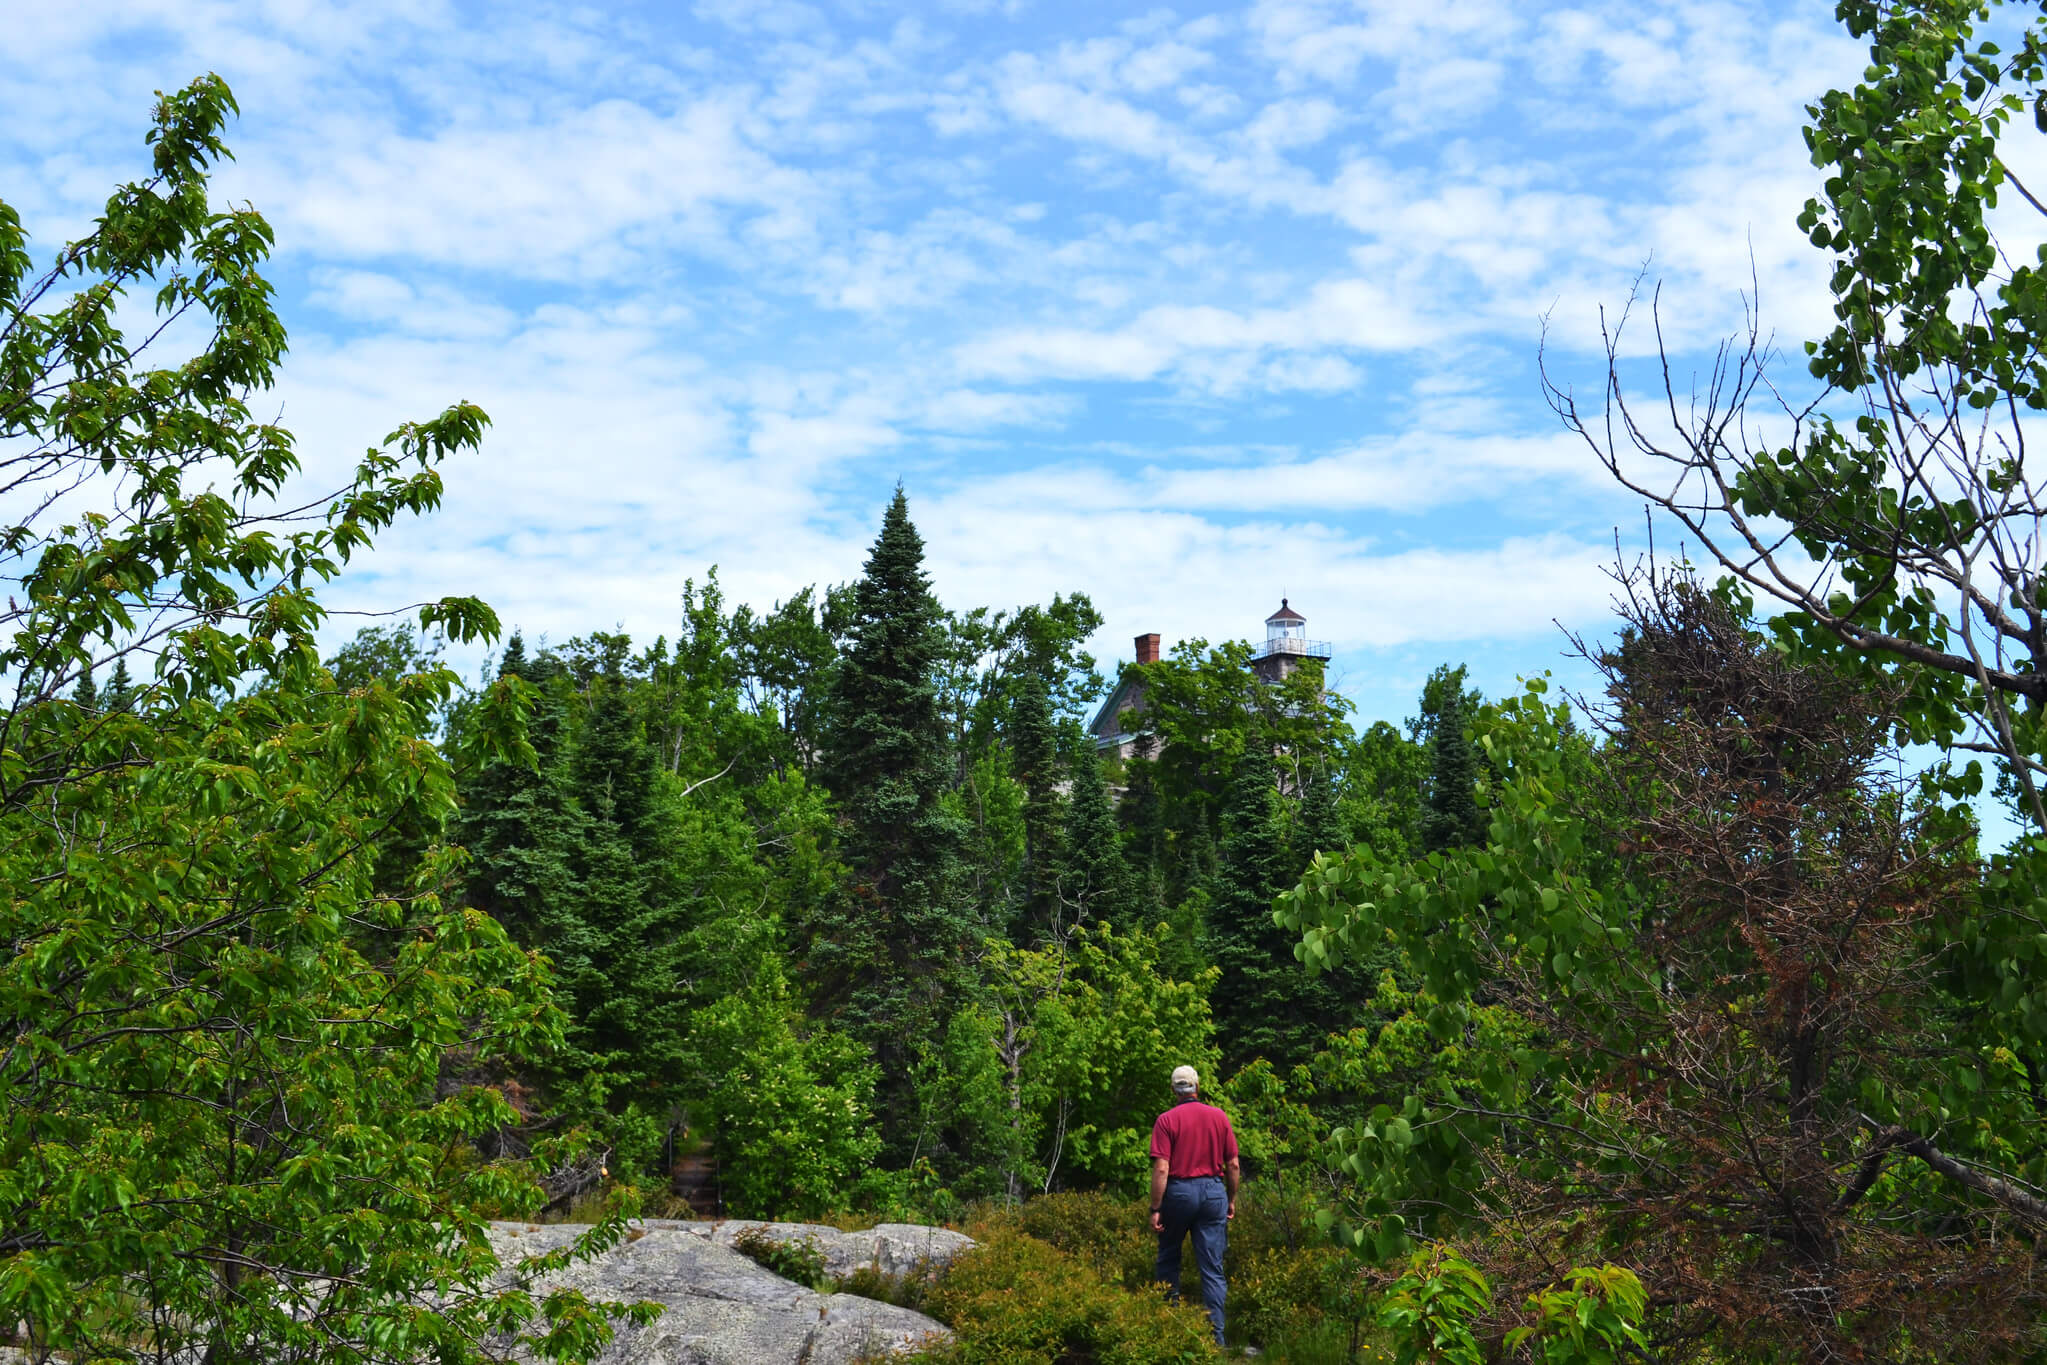 Looking out over the woods. Parks all over Wisconsin have been conserved using the Knowles-Nelson Stewardship Program.